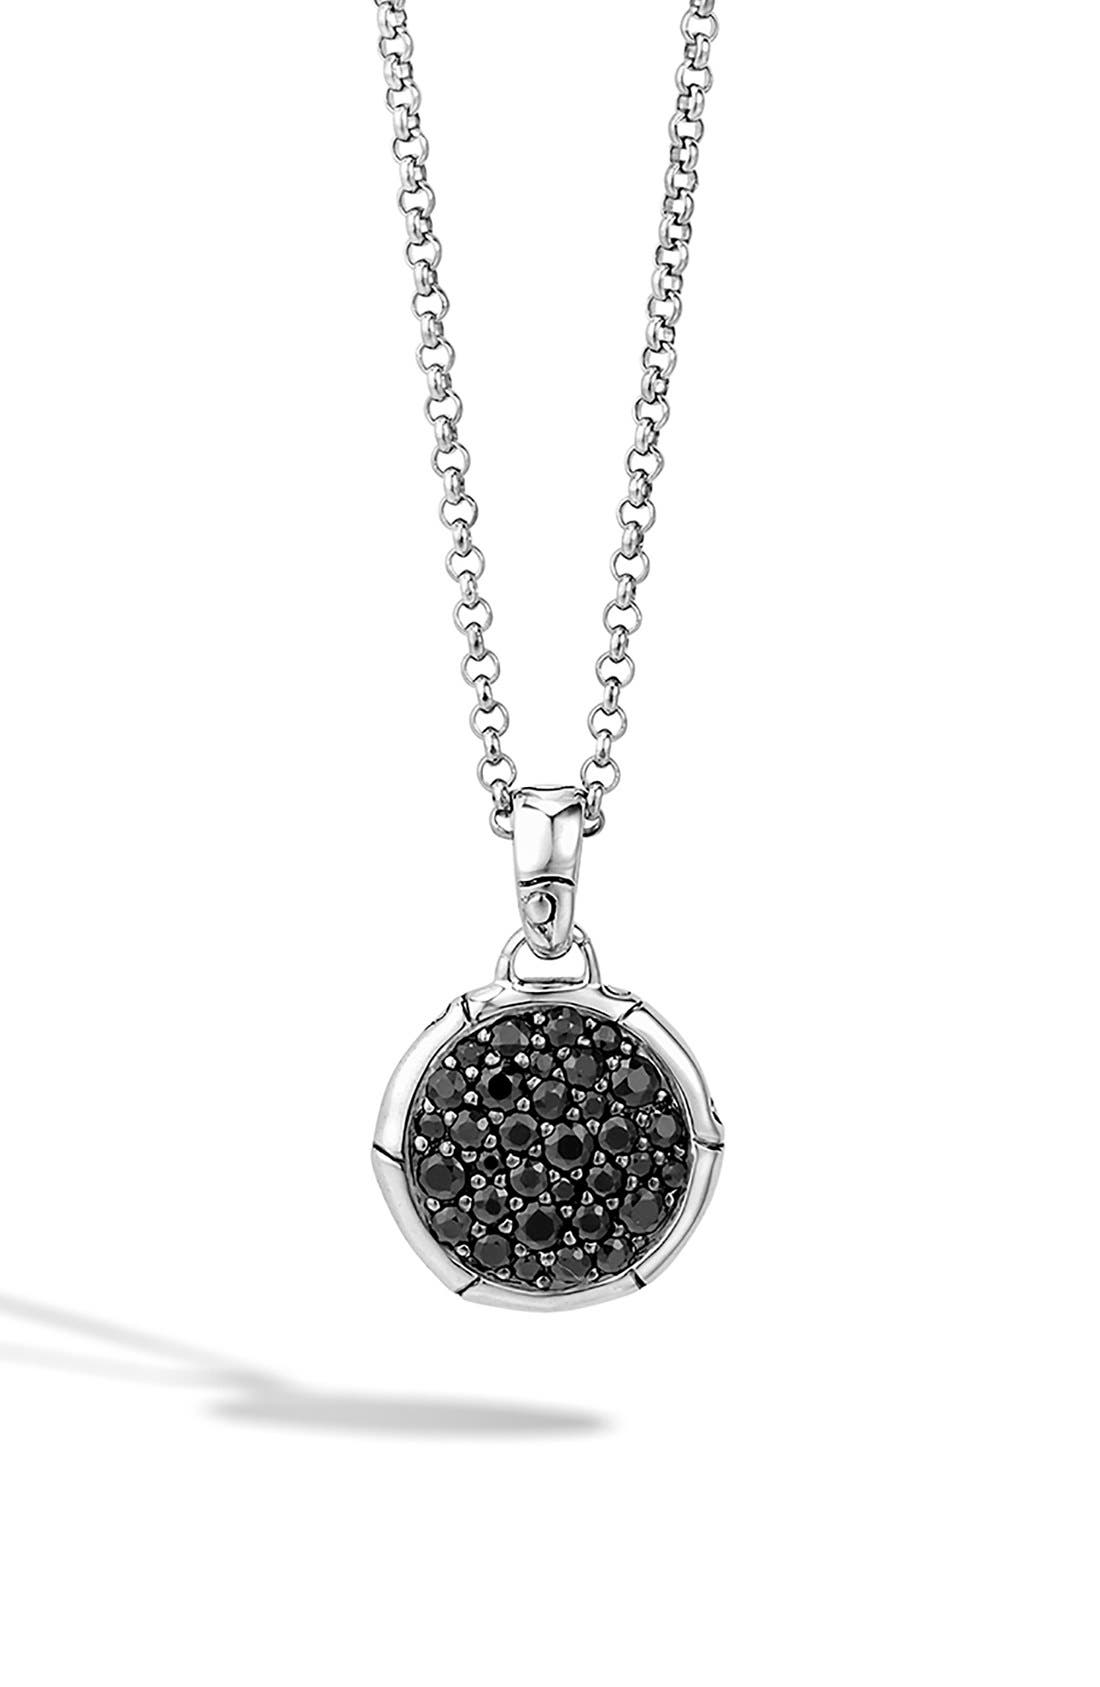 Alternate Image 1 Selected - John Hardy 'Bamboo' Small Round Pendant Necklace